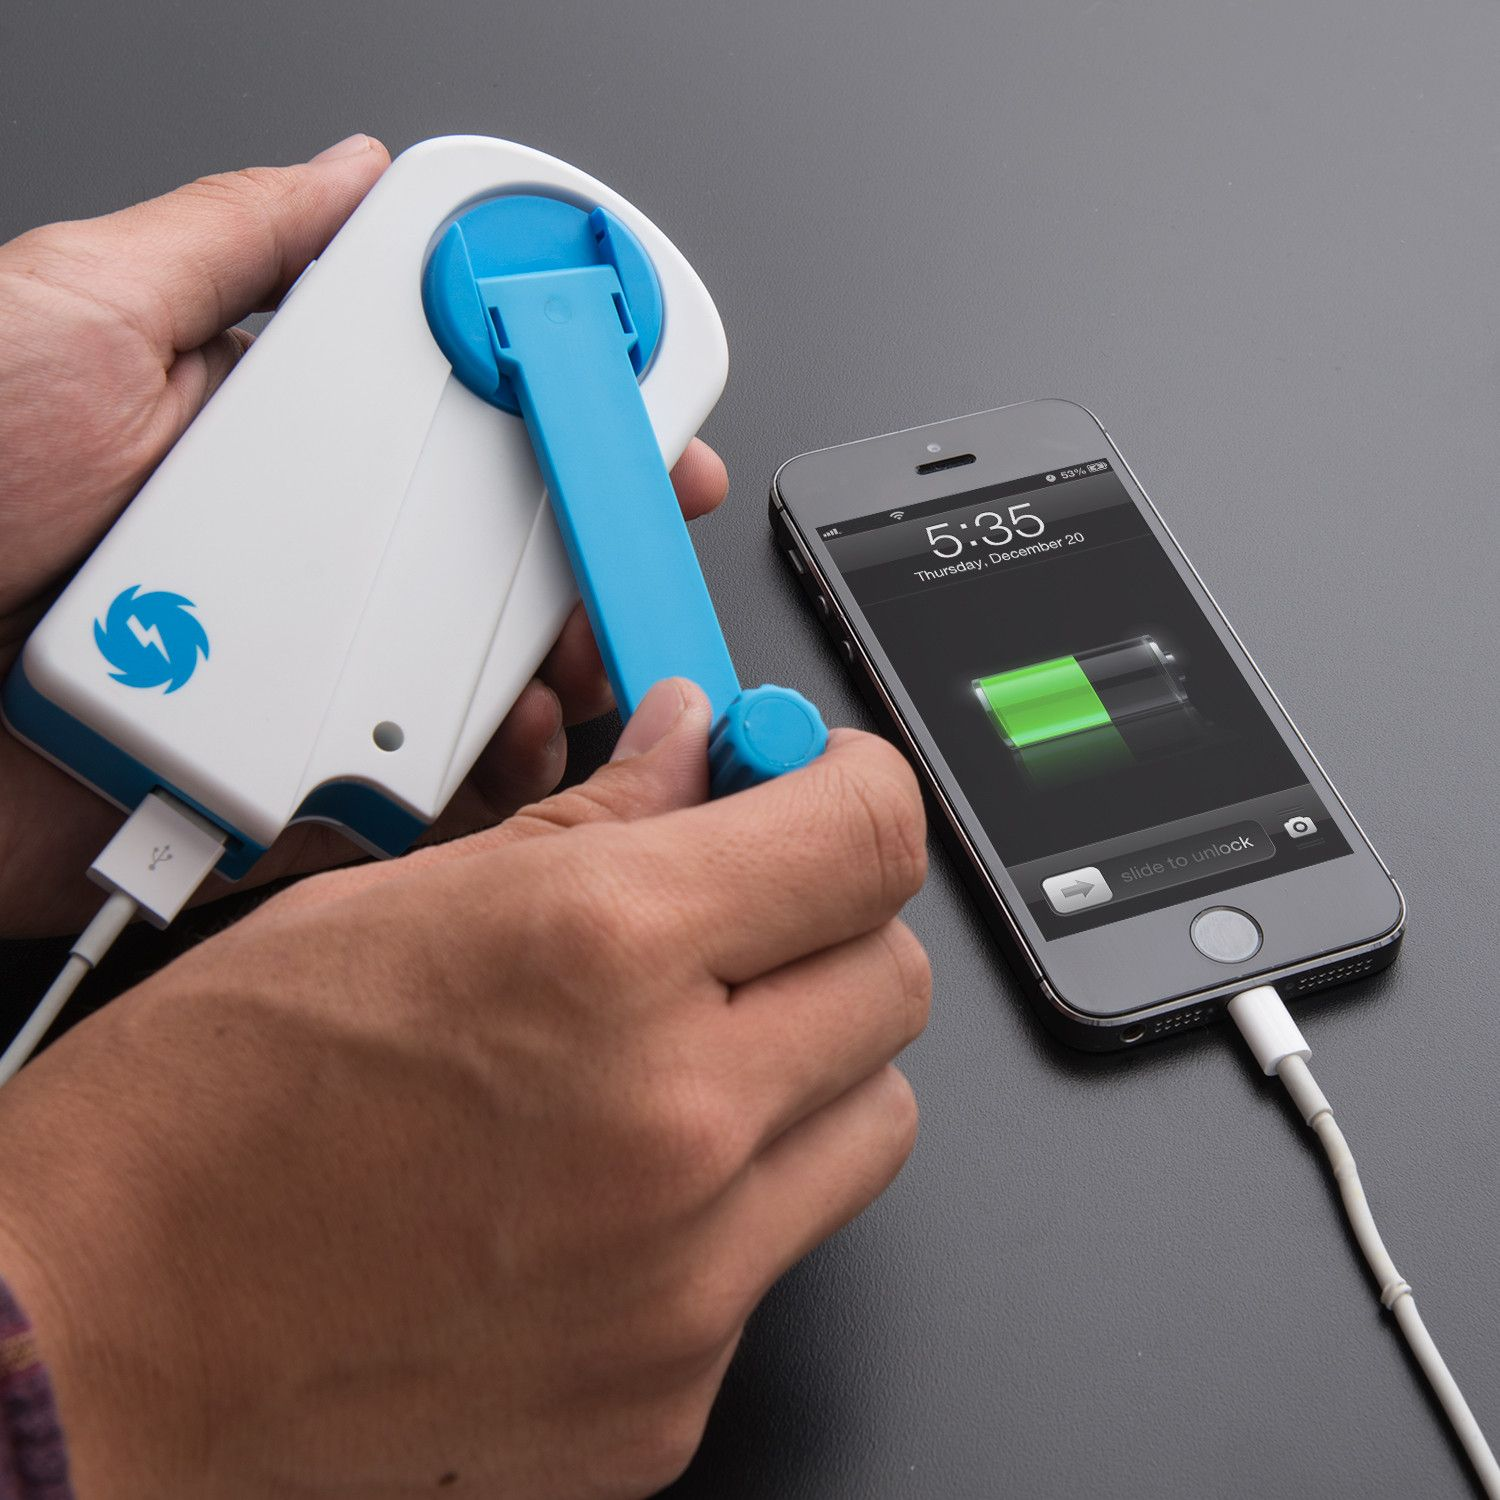 Don't get caught without power with SOS charger, you can generate power anywhere simply…